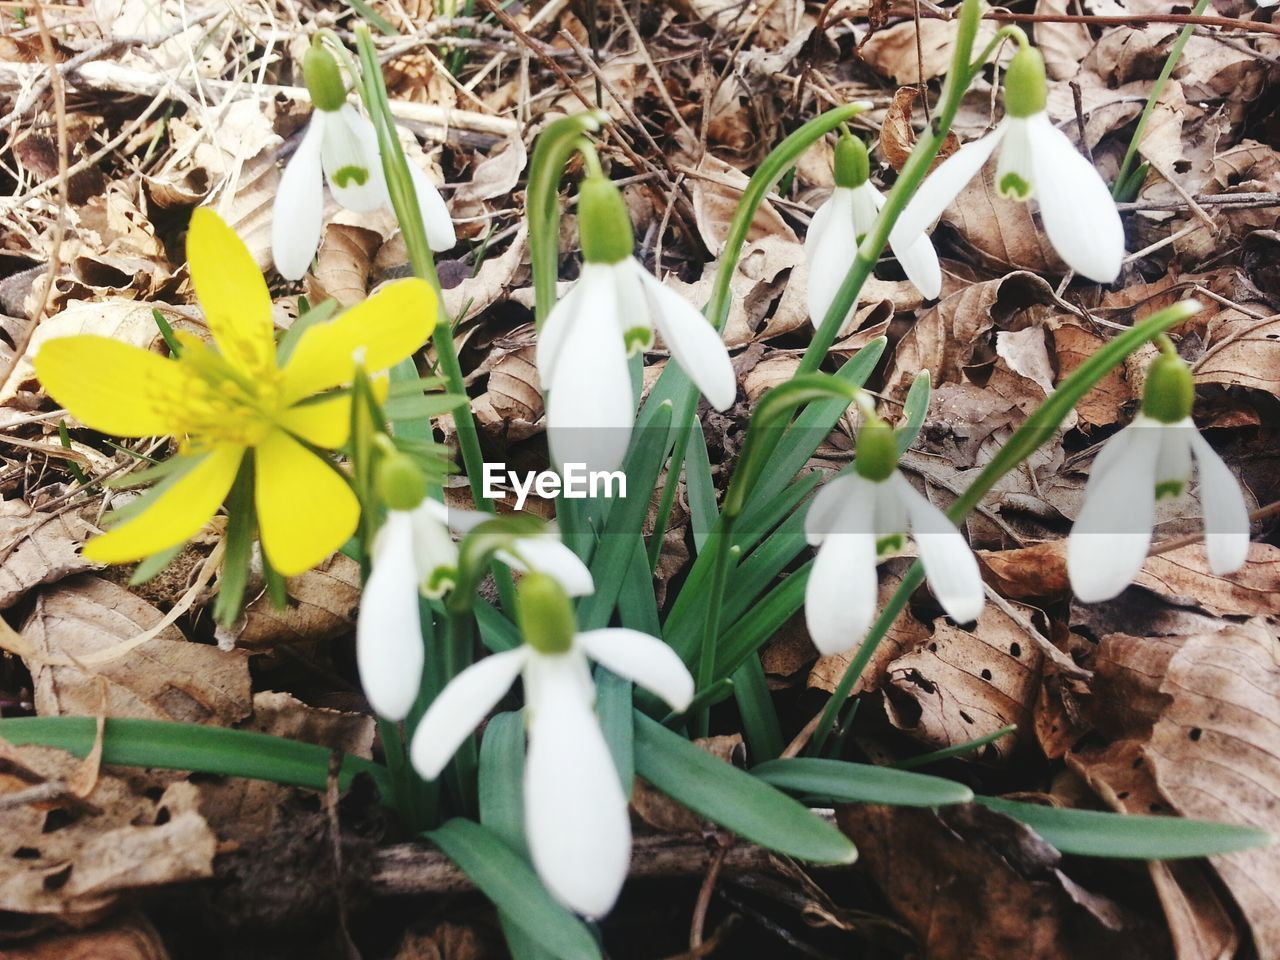 flower, fragility, petal, growth, snowdrop, plant, nature, high angle view, white color, beauty in nature, freshness, leaf, day, close-up, flower head, no people, green color, outdoors, blooming, crocus